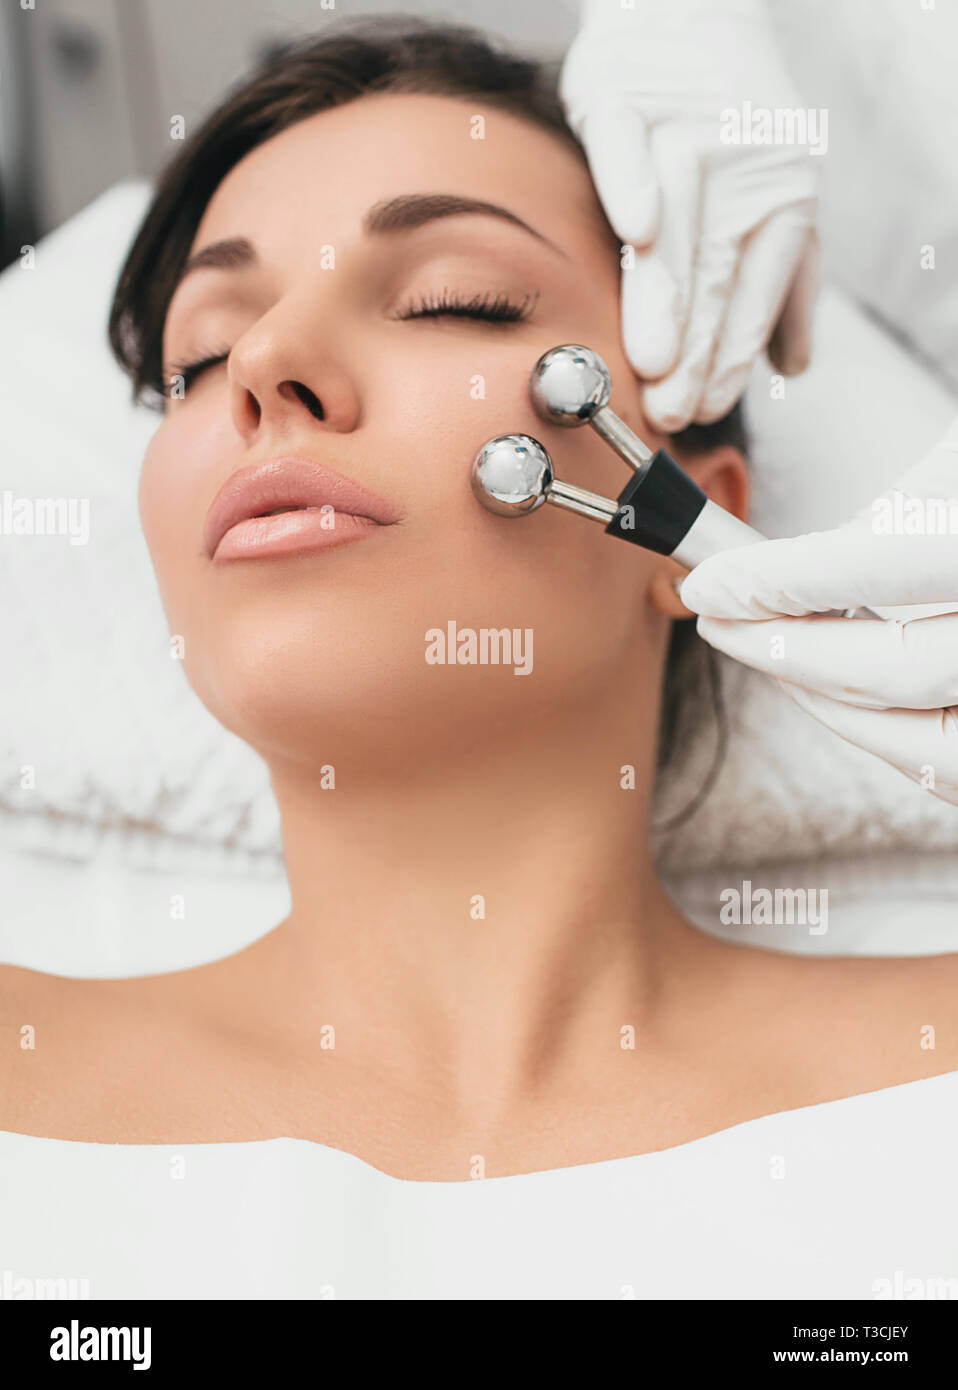 Beautiful woman receiving facial microcurrent procedure for lifting face. Facial rejuvenation and facelift with microcurrent therapy Stock Photo